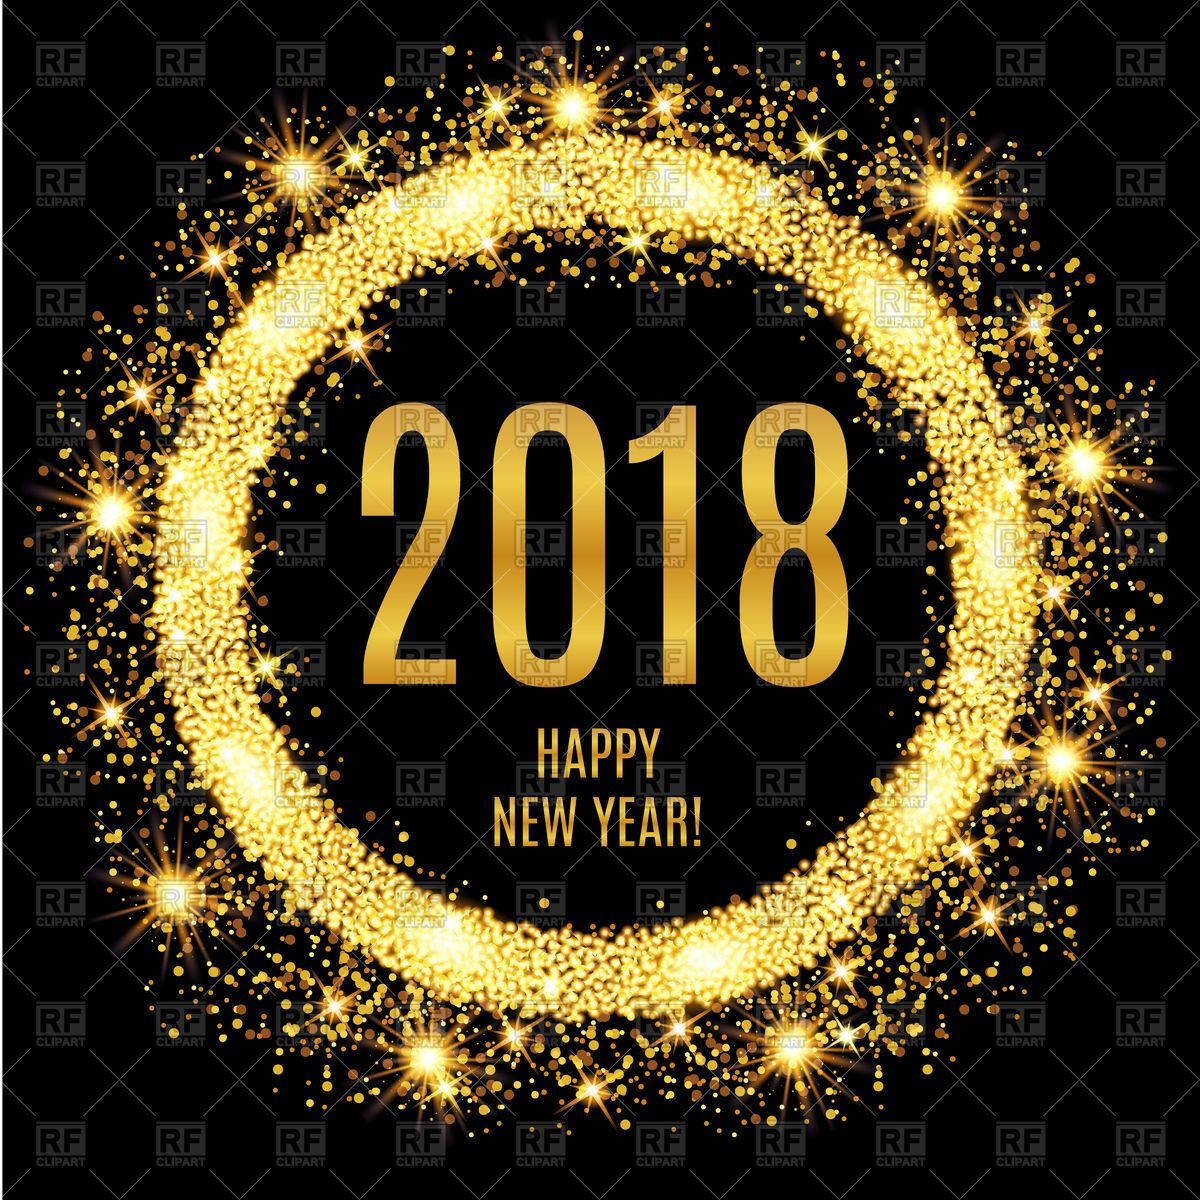 2018 Happy New Year glowing gold background Vector Image.